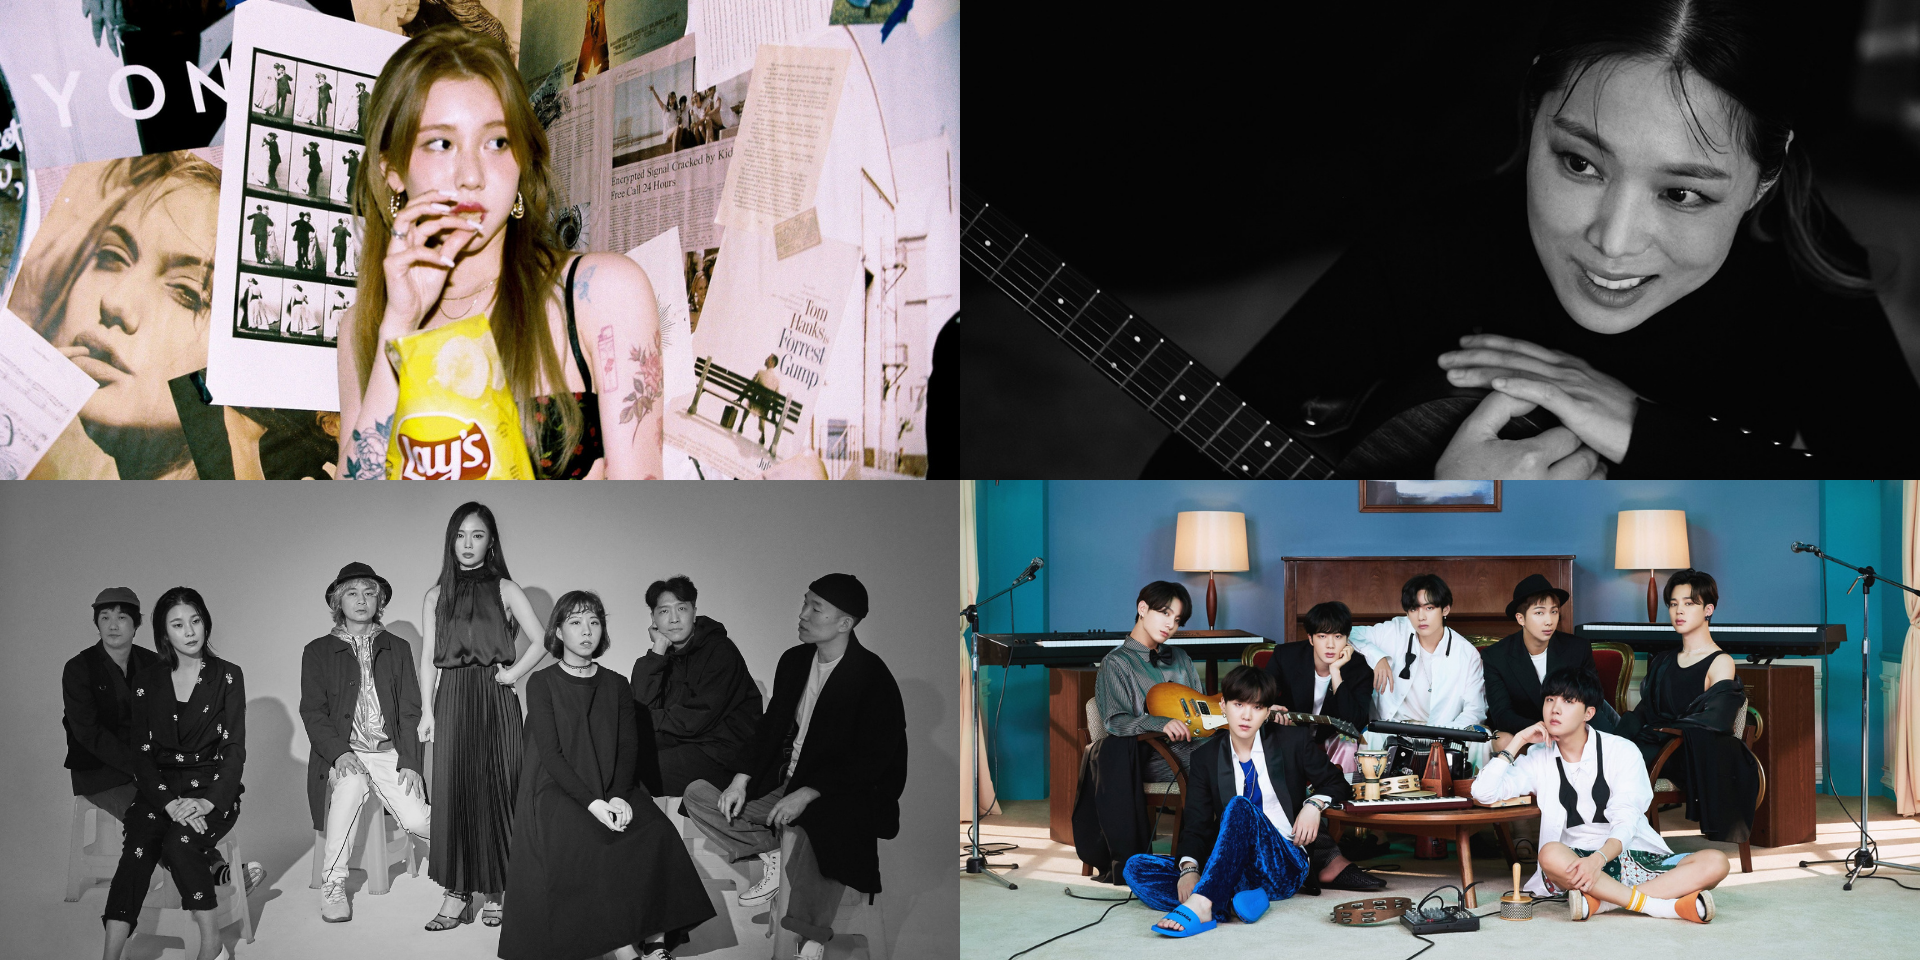 Here are the winners of the 2021 Korean Music Awards – LEENALCHI, BTS, Yerin Baek, Jeongmilla, and more